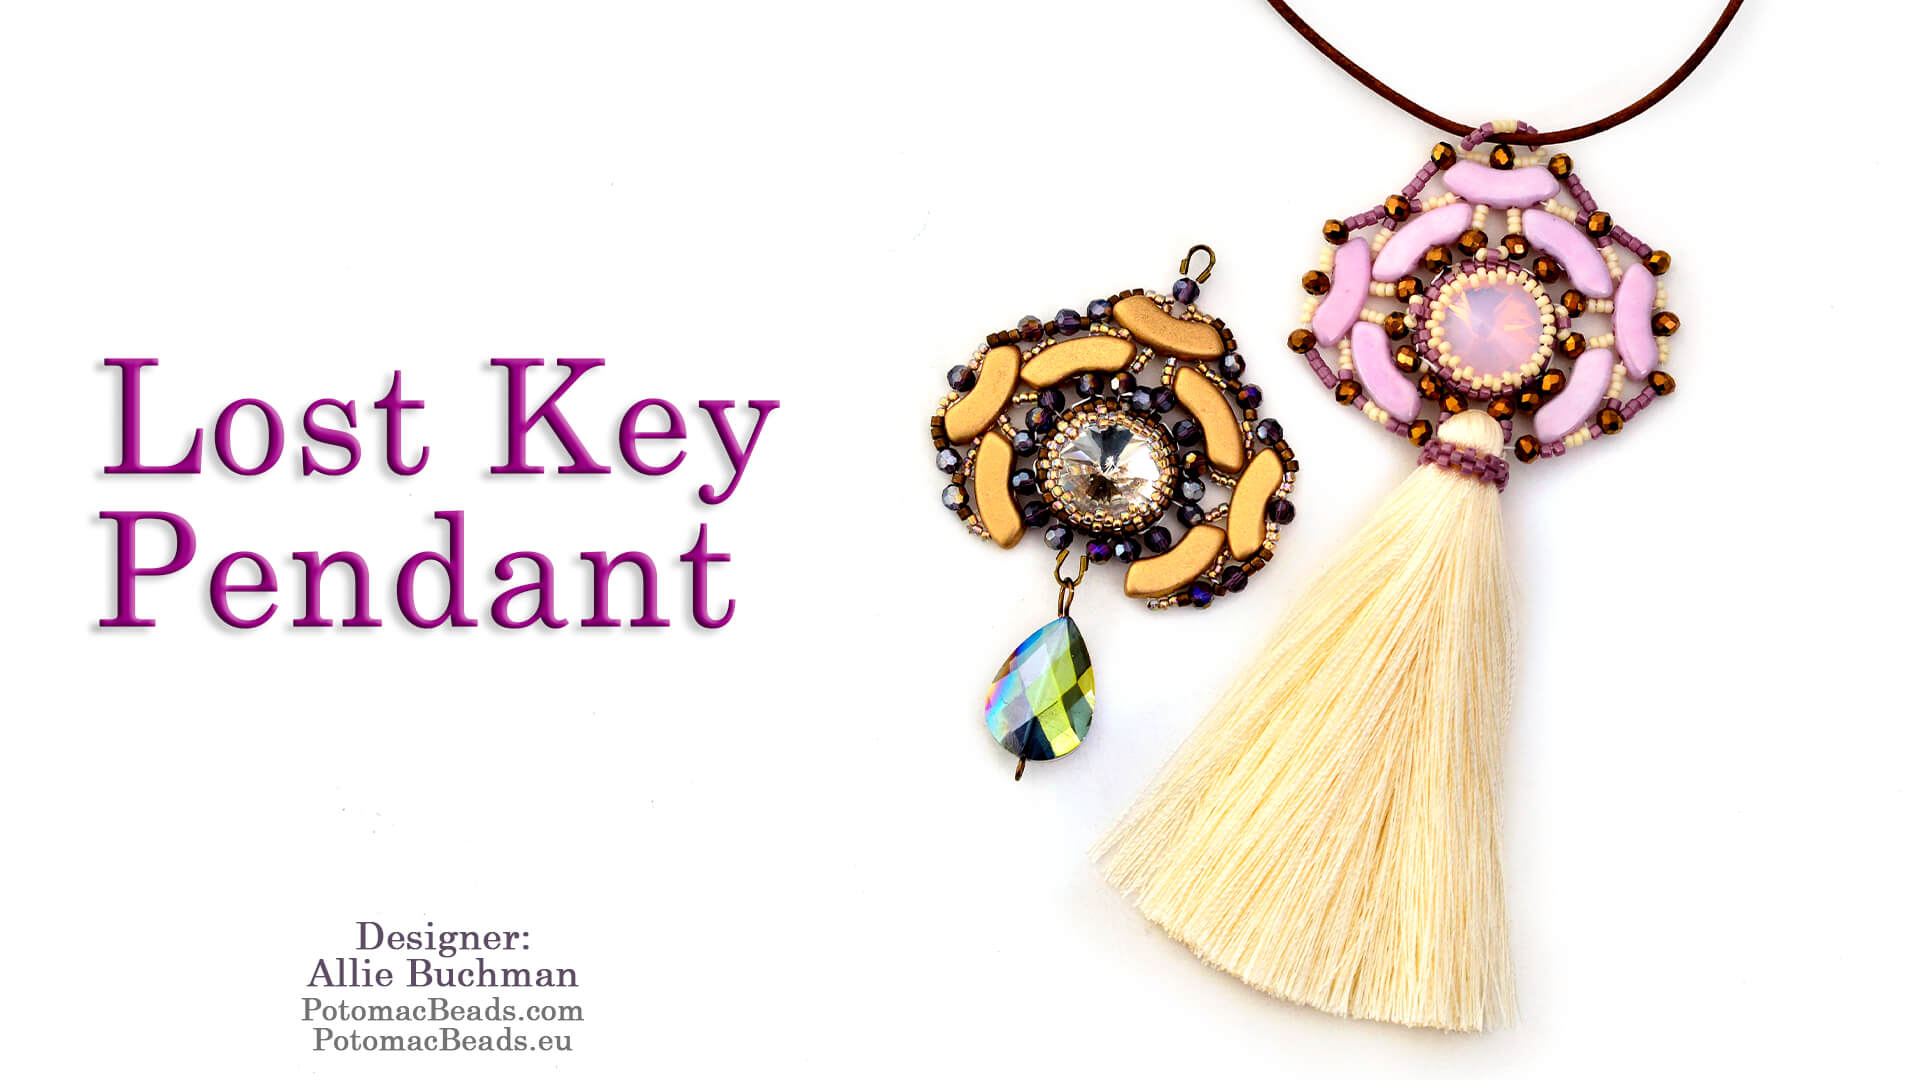 How to Bead Jewelry / Beading Tutorials & Jewel Making Videos / Pendant Projects / Lost Key Pendant Tutorial